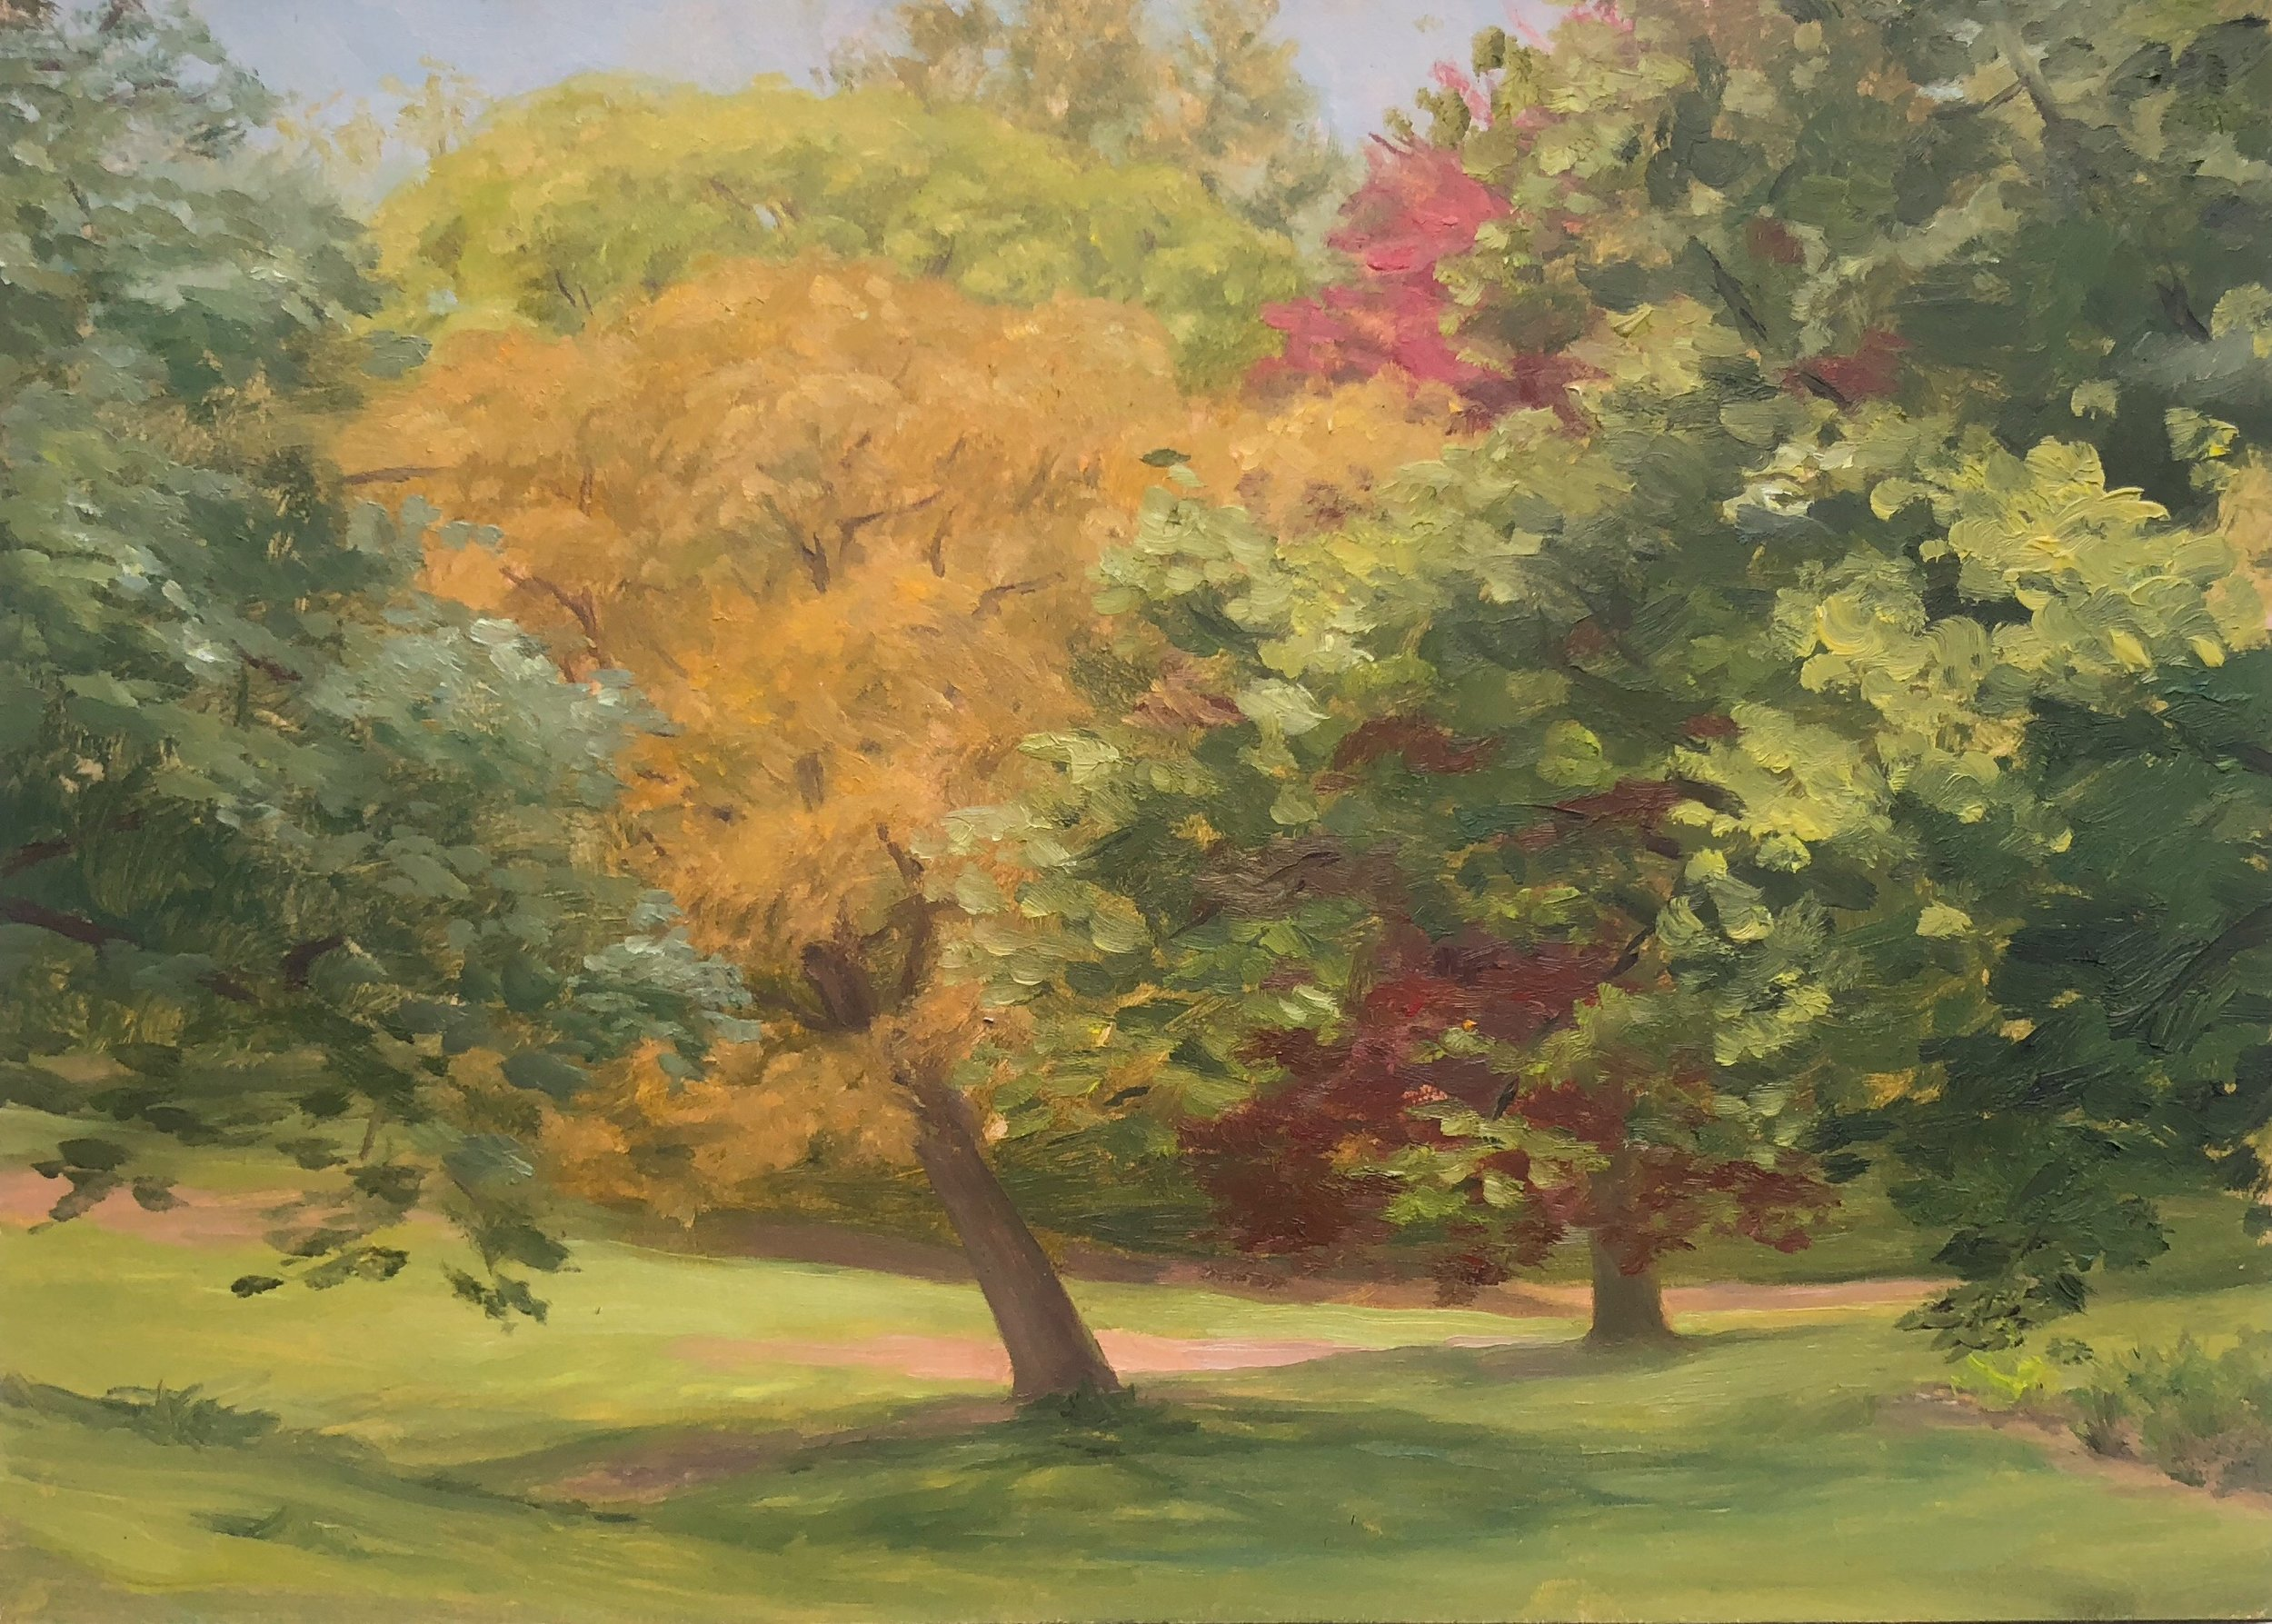 Prospect Park #4 Oil on panel 5 by 7 inches 2018